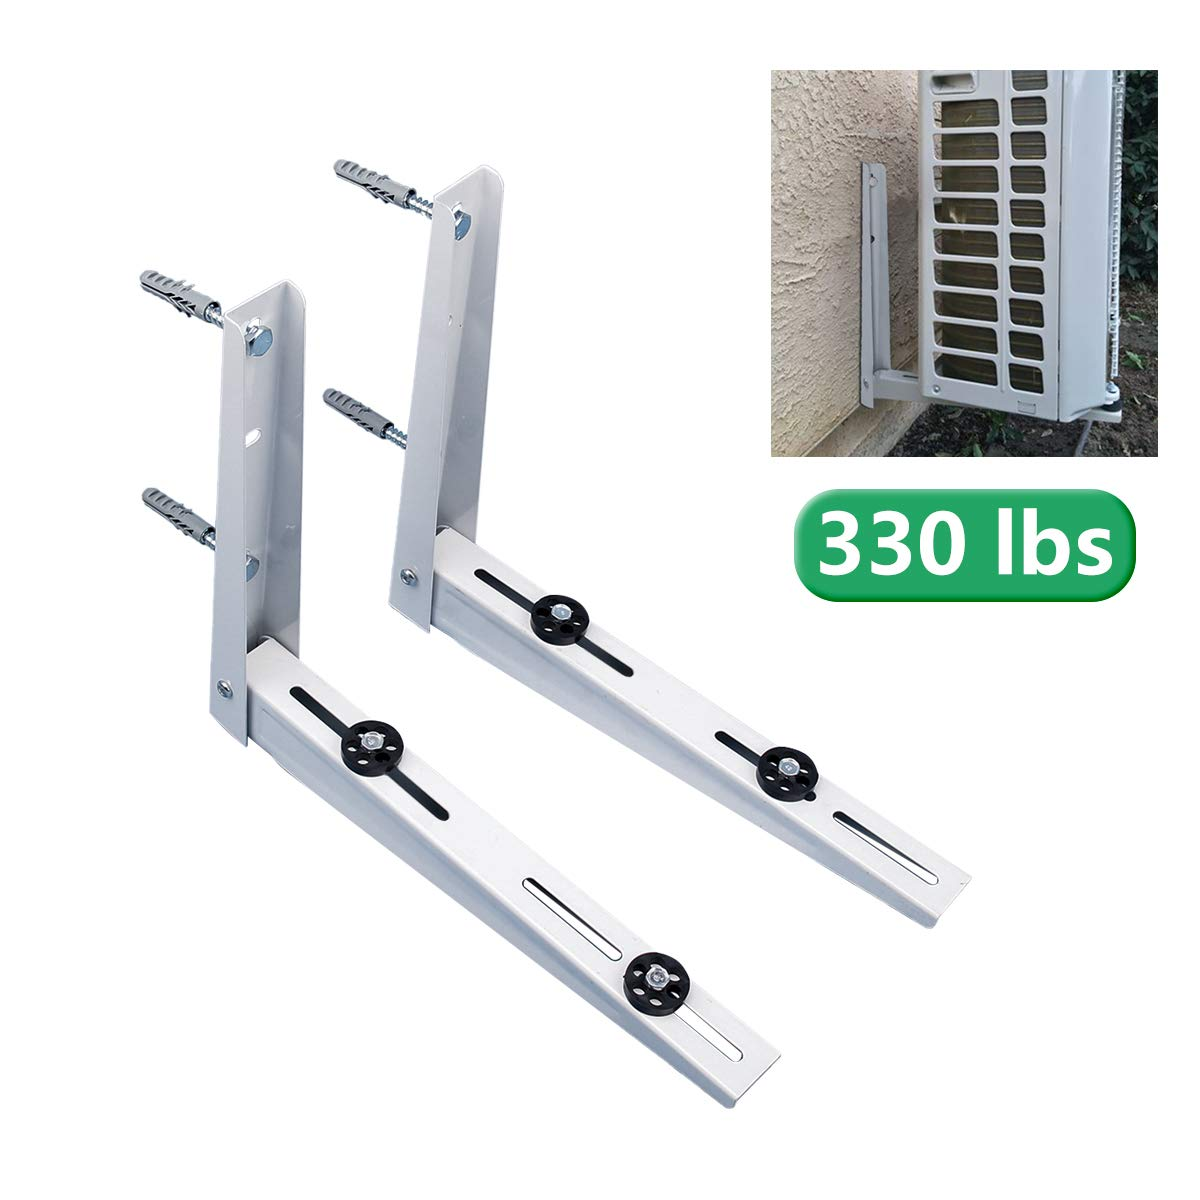 Forestchill Foldable Wall Mount Bracket, fits Mini Split Ductless Outdoor Unit Air Conditioner Condensing Unit Heat Pump System Condenser Universal Design, Support up to 330lbs, 18000-36000 BTU,1-4P by Forestchill